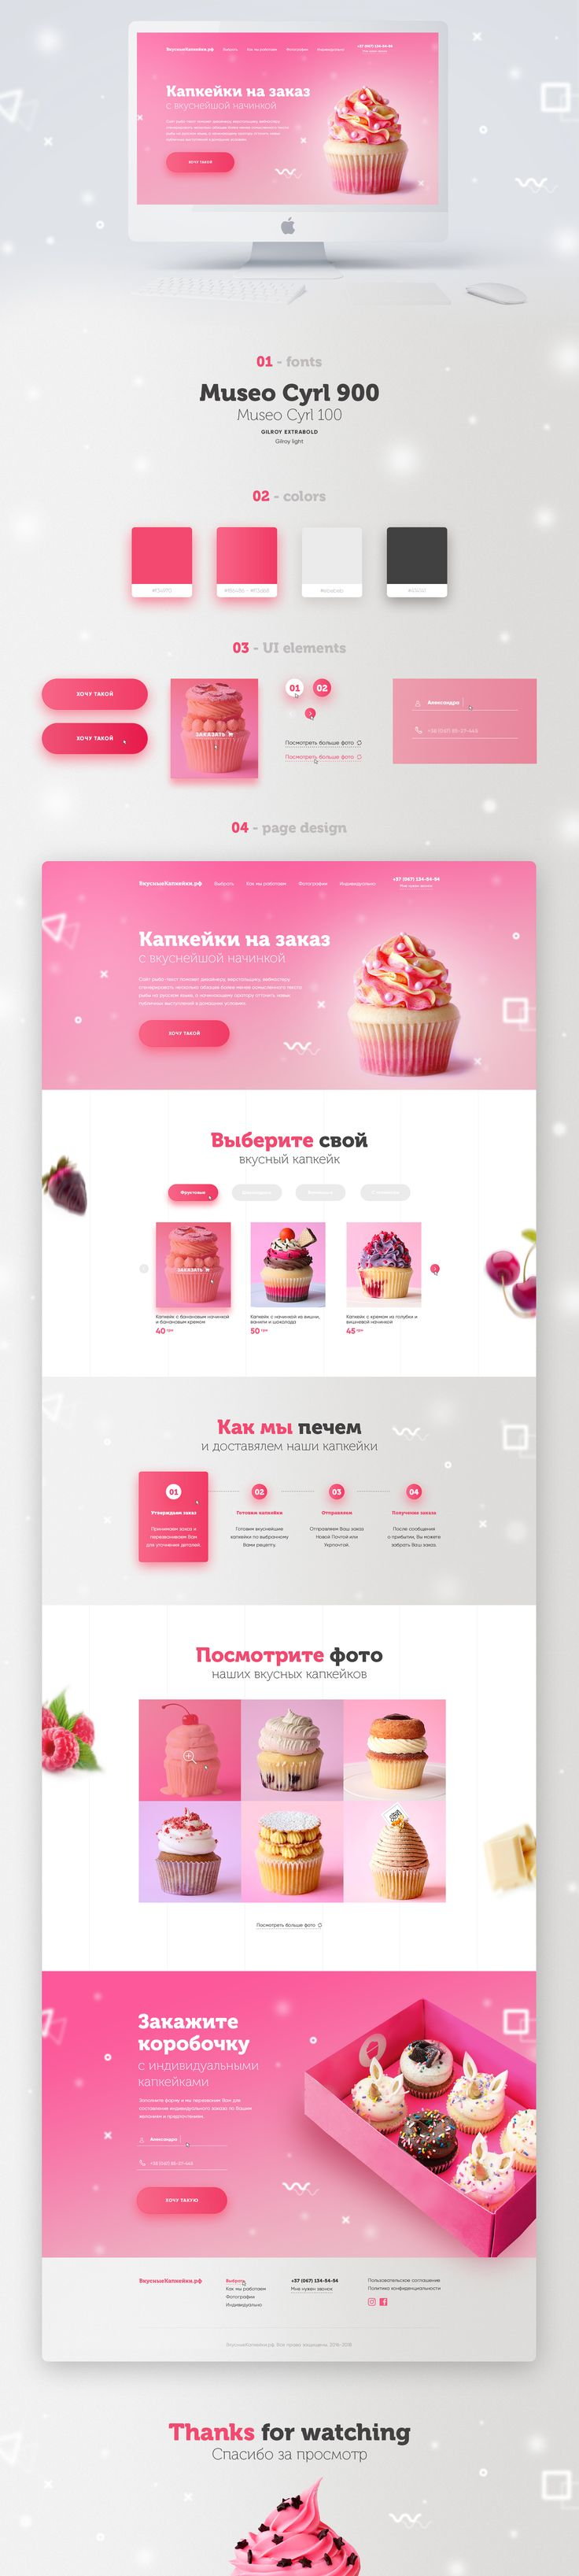 "Check out this @Behance project: ""Langing Page. Капкейки на заказ"" https://www.behance.net/gallery/60923387/Langing-Page-kapkejki-na-zakaz"